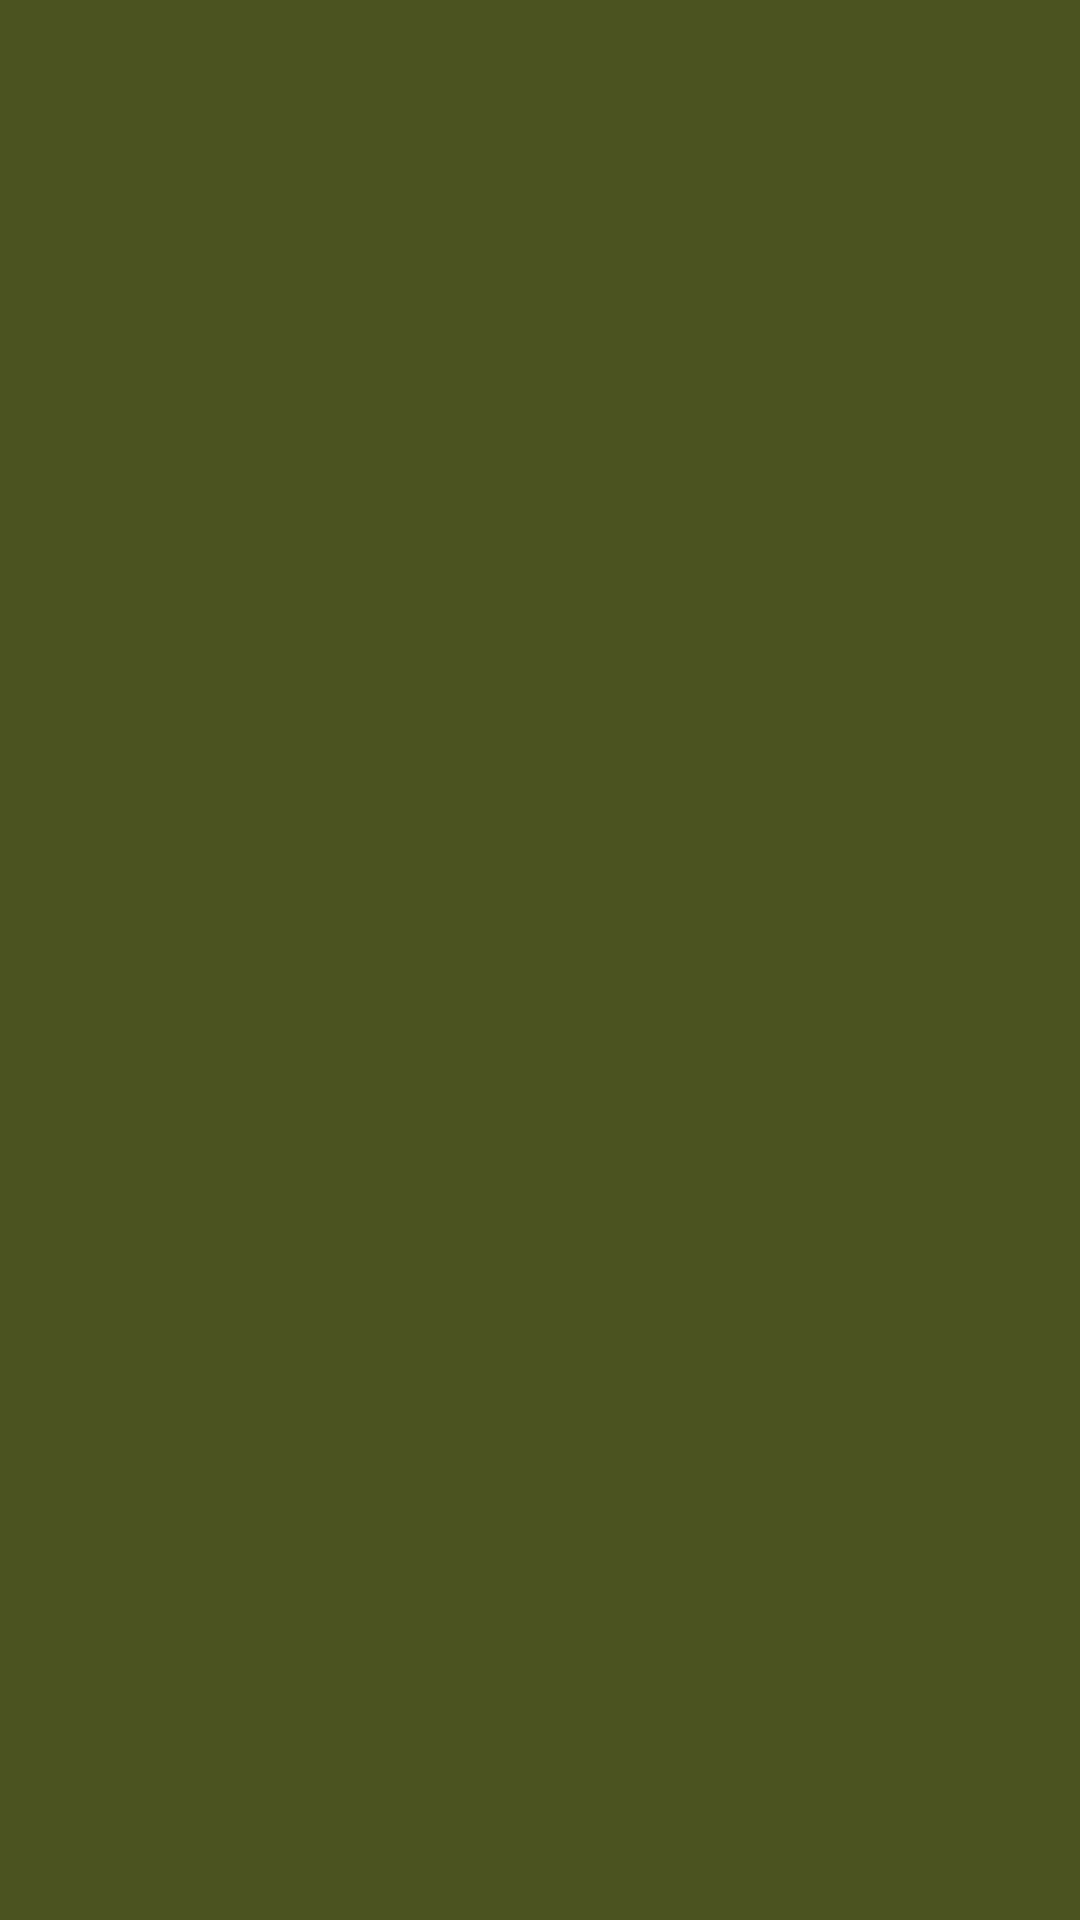 1080x1920 Army Green Solid Color Background